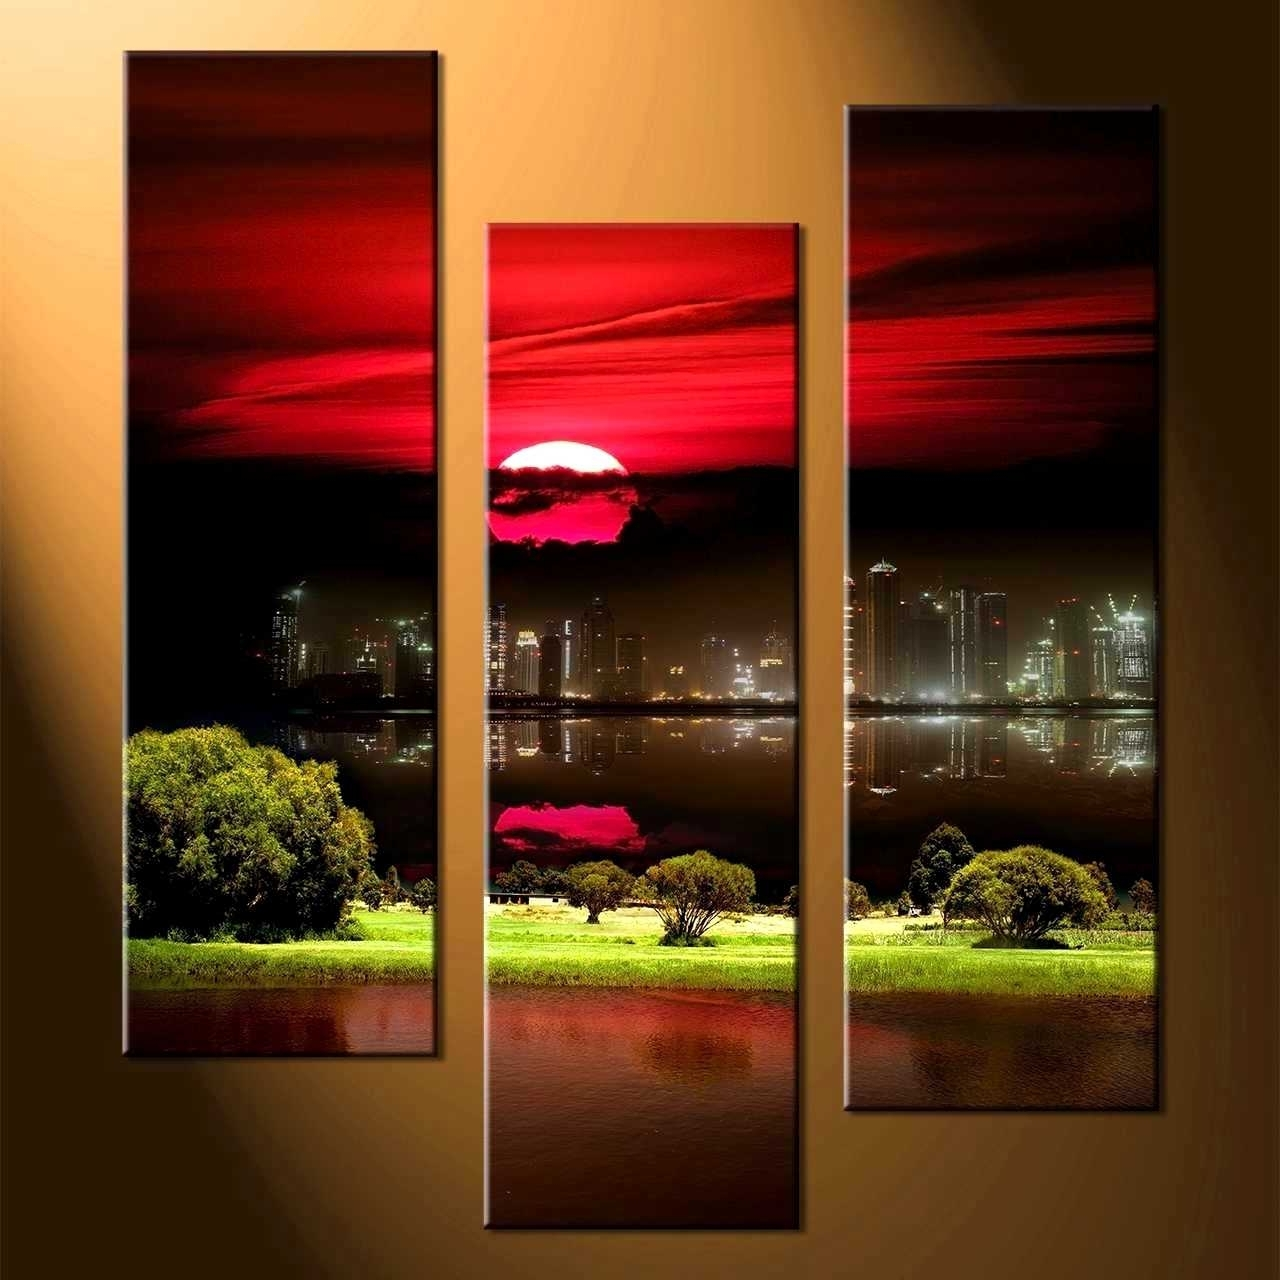 Delectable Remarkable Wall Decor Piece Canvas Art Black Artwork Home Regarding Most Popular Red And Black Canvas Wall Art (View 5 of 15)